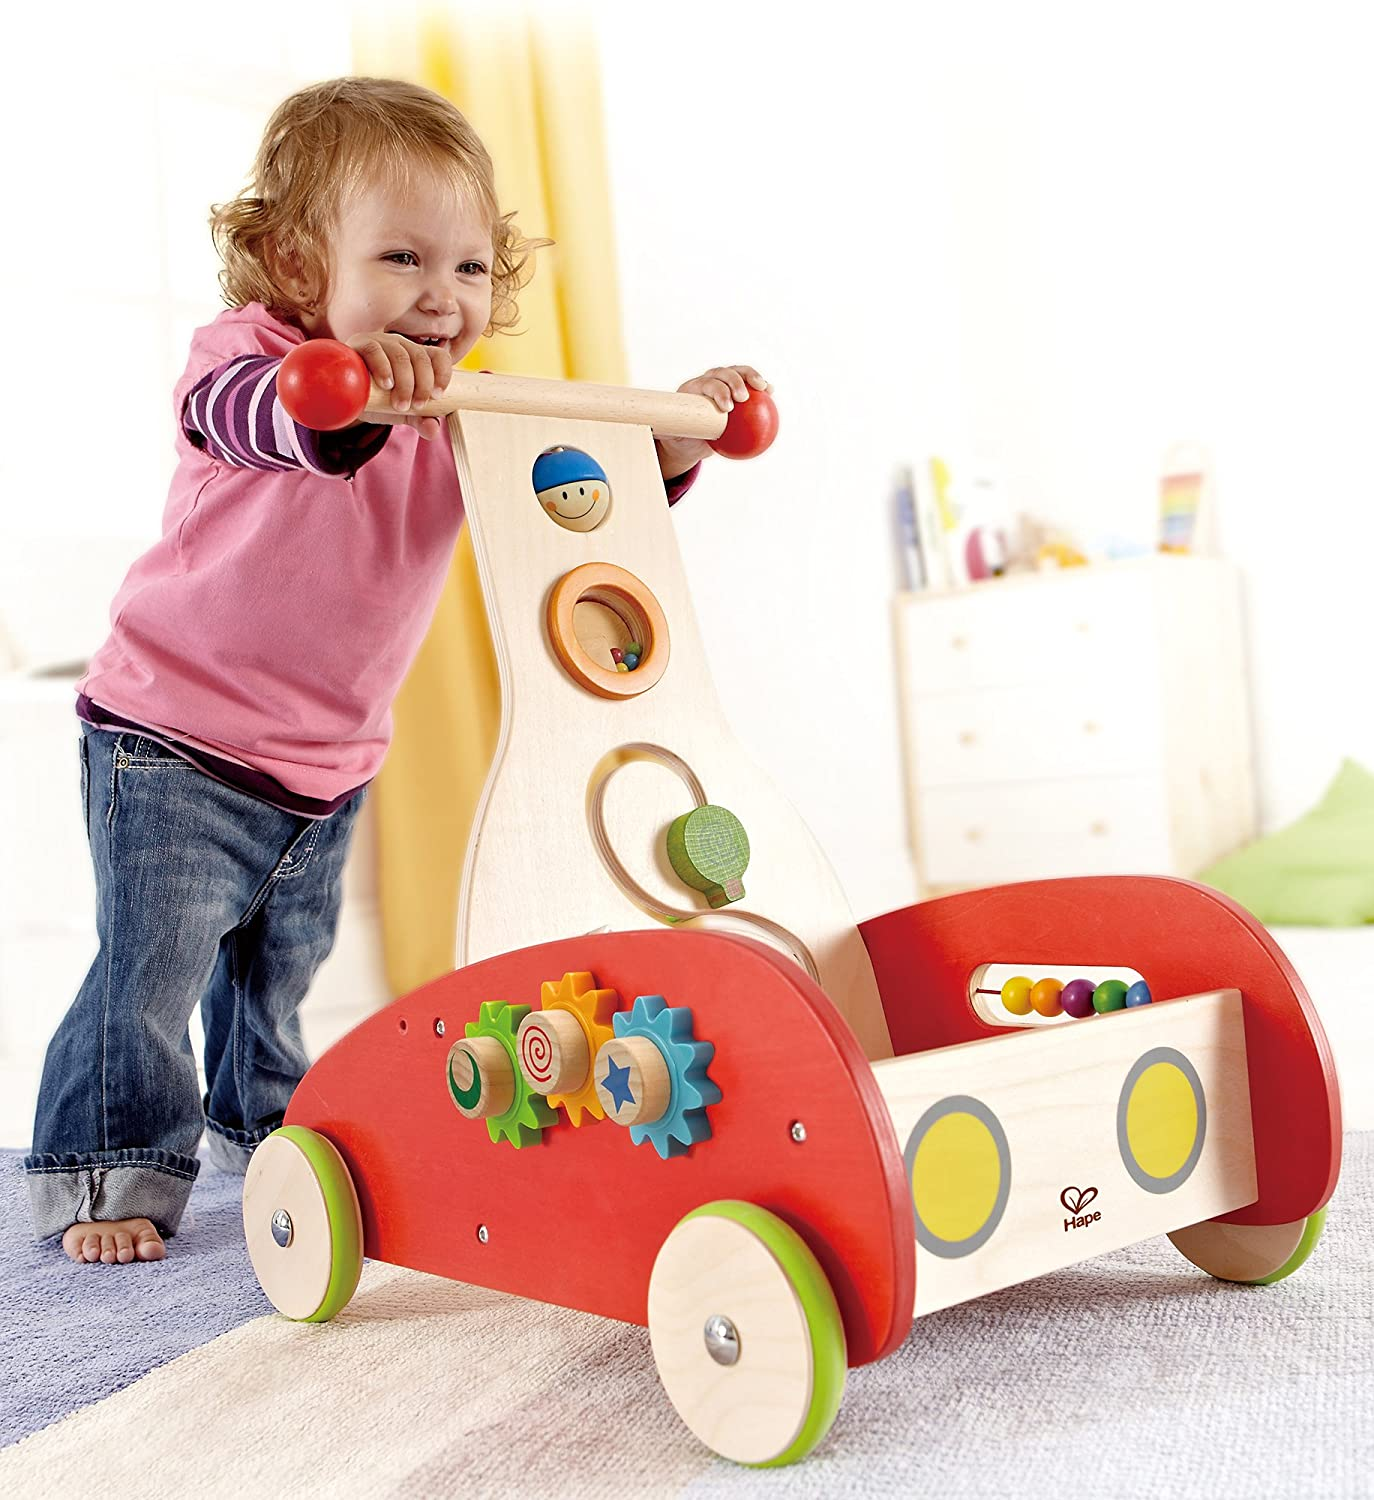 Amazon Hape Wonder Walker Push and Pull Toddler Walking Toy